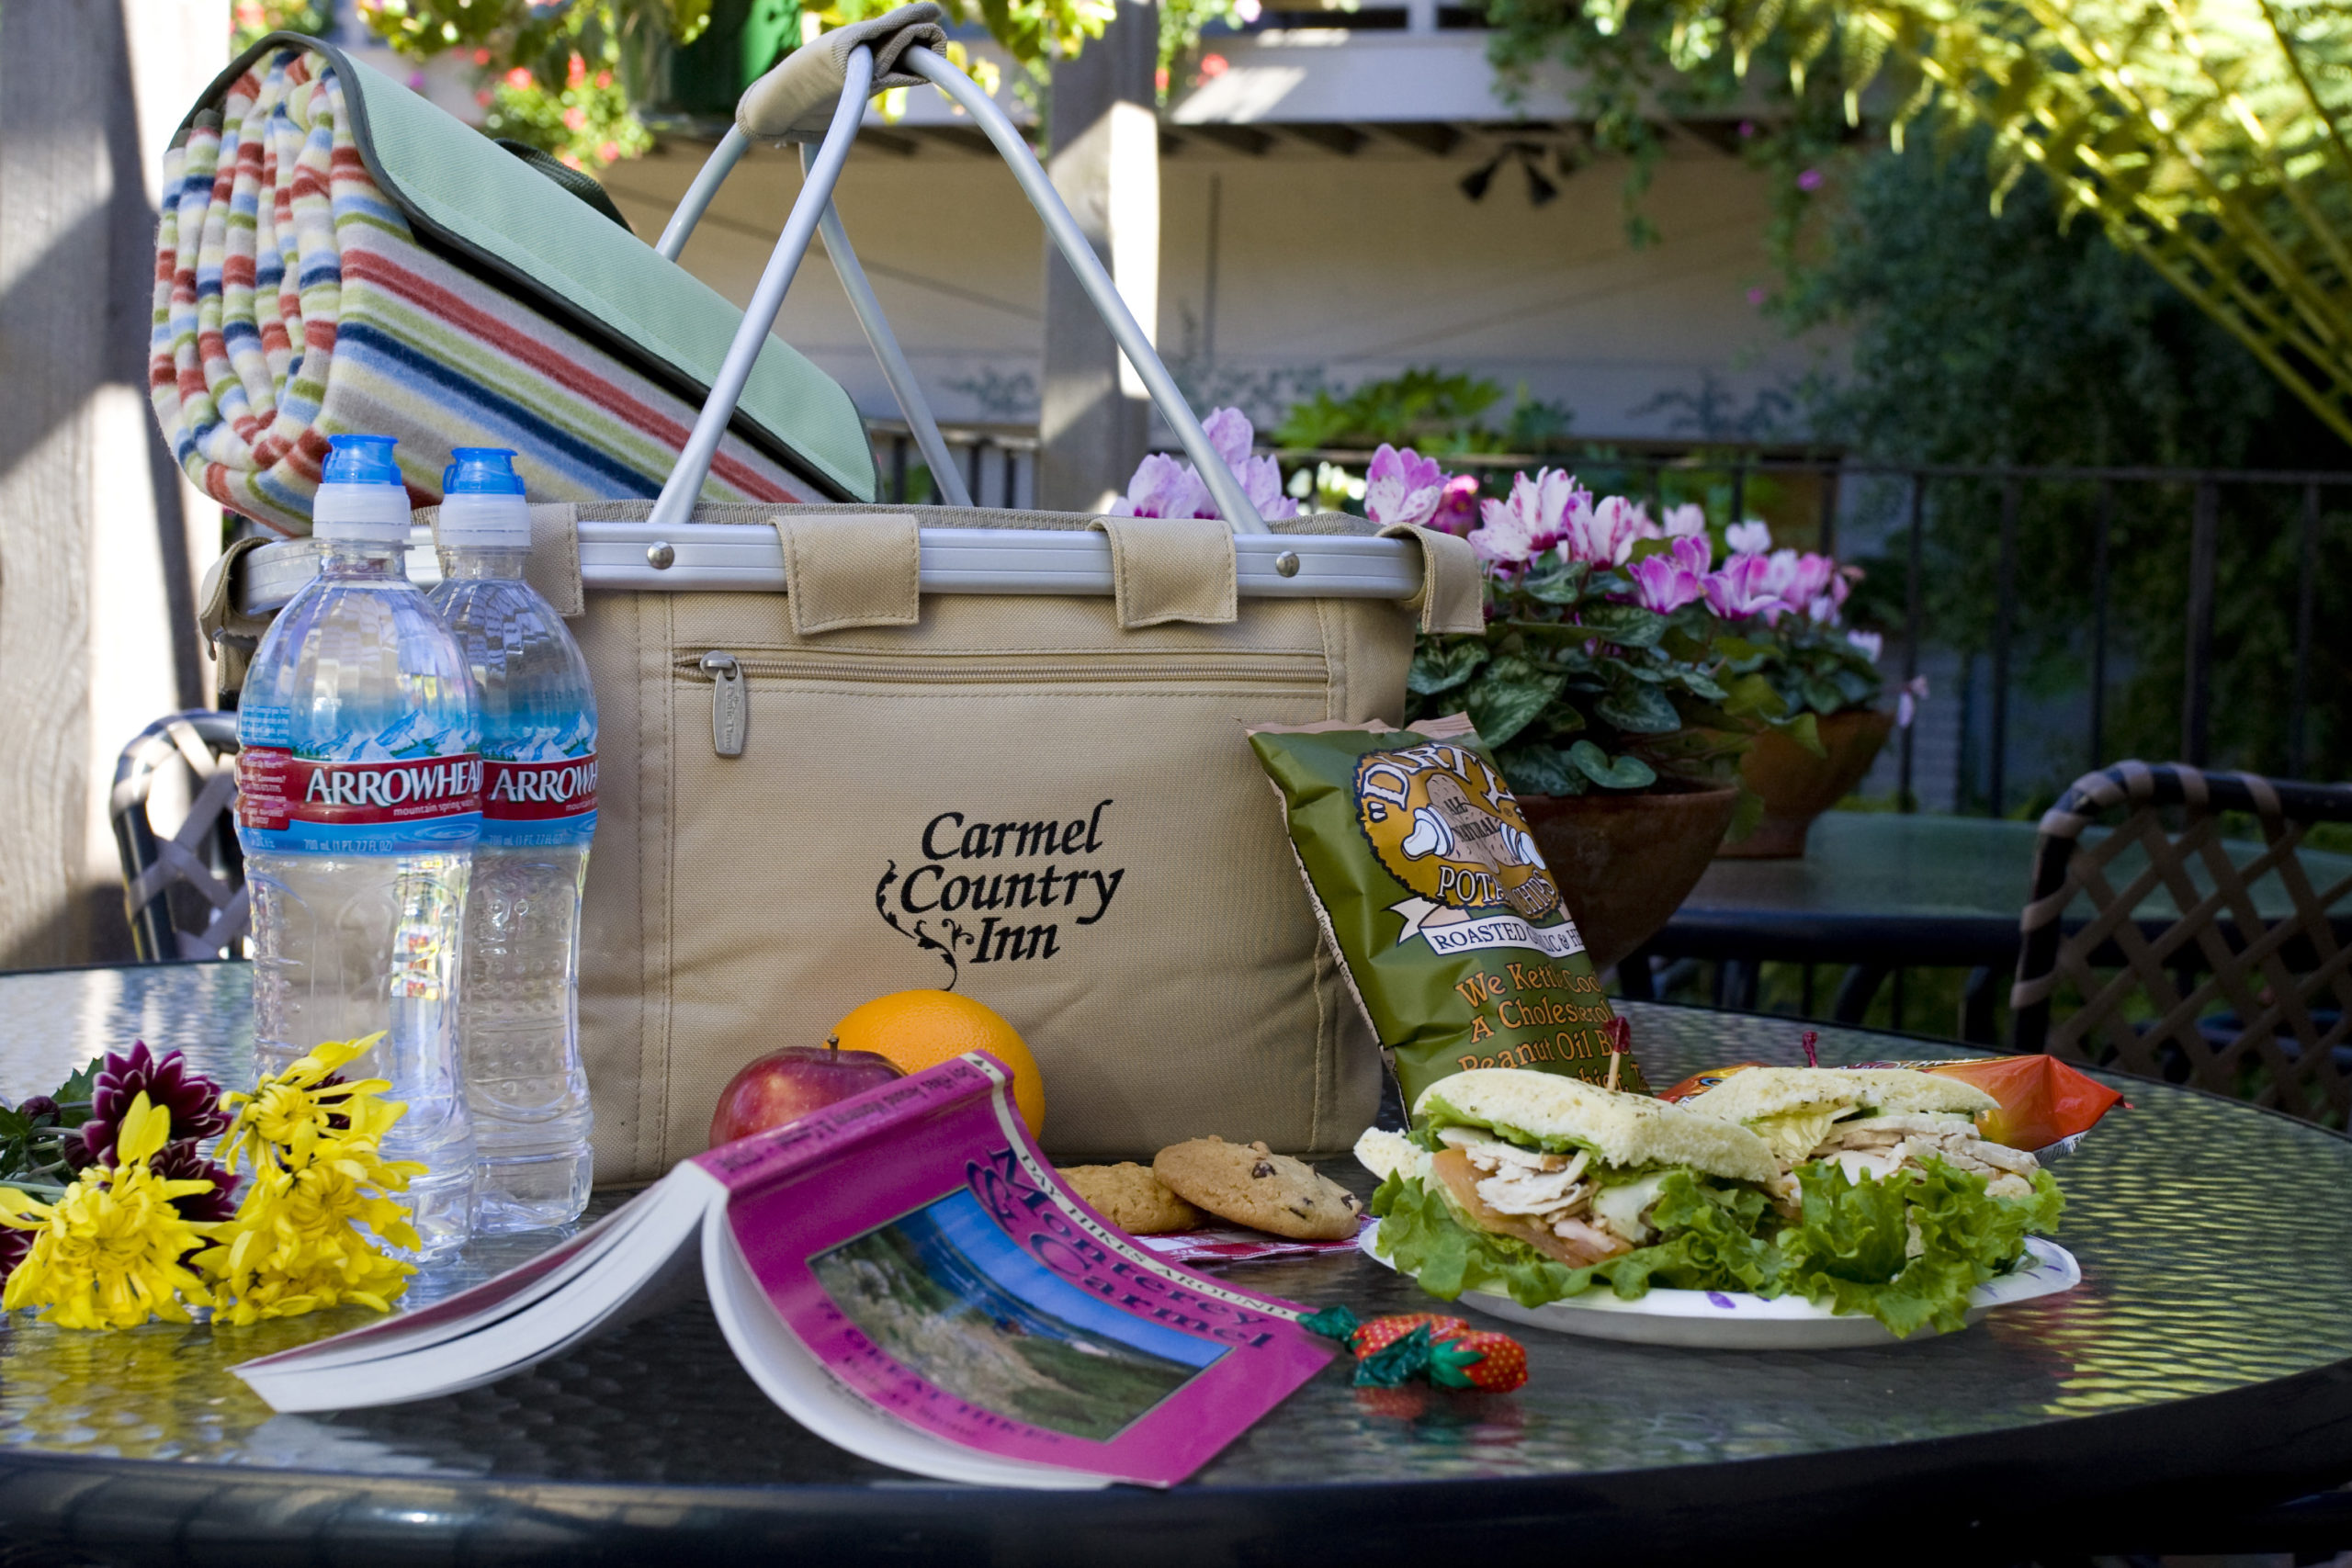 Logo picnic basket with hiking book and picnic for two